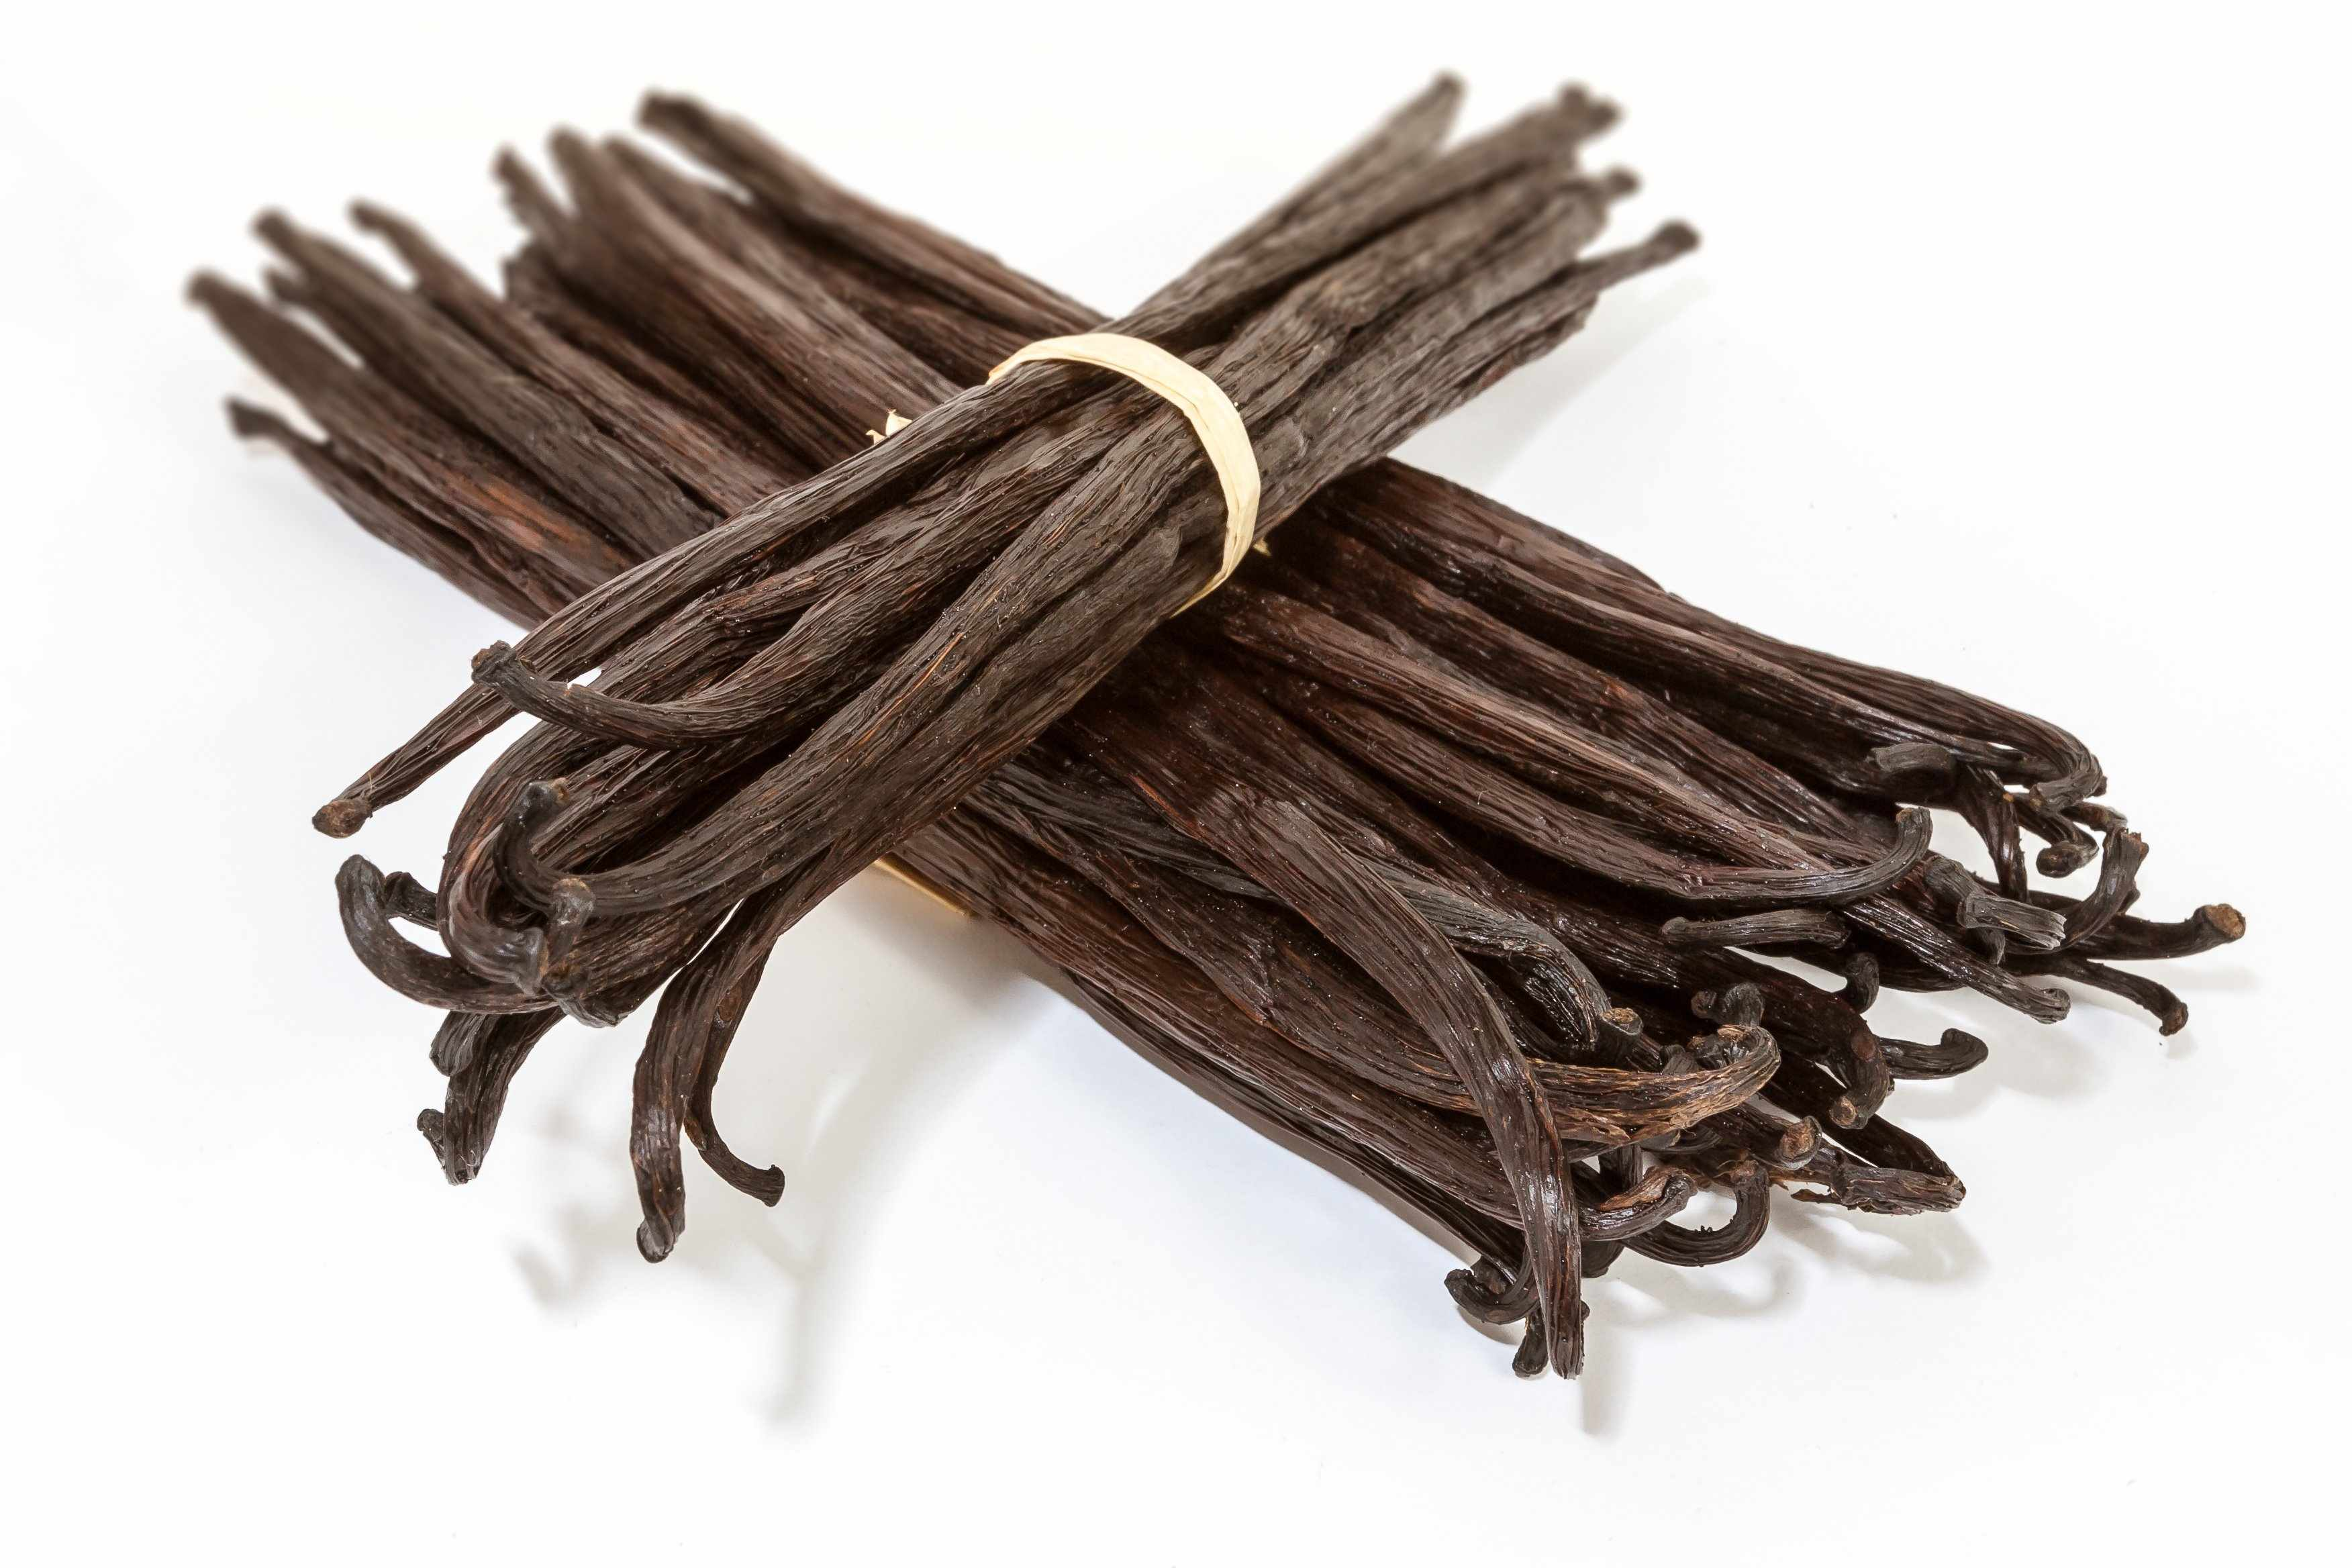 Madagascar Vanilla Beans - Whole Grade A Vanilla Pods for Vanilla Extract and Baking - Vanilla Bean Kings